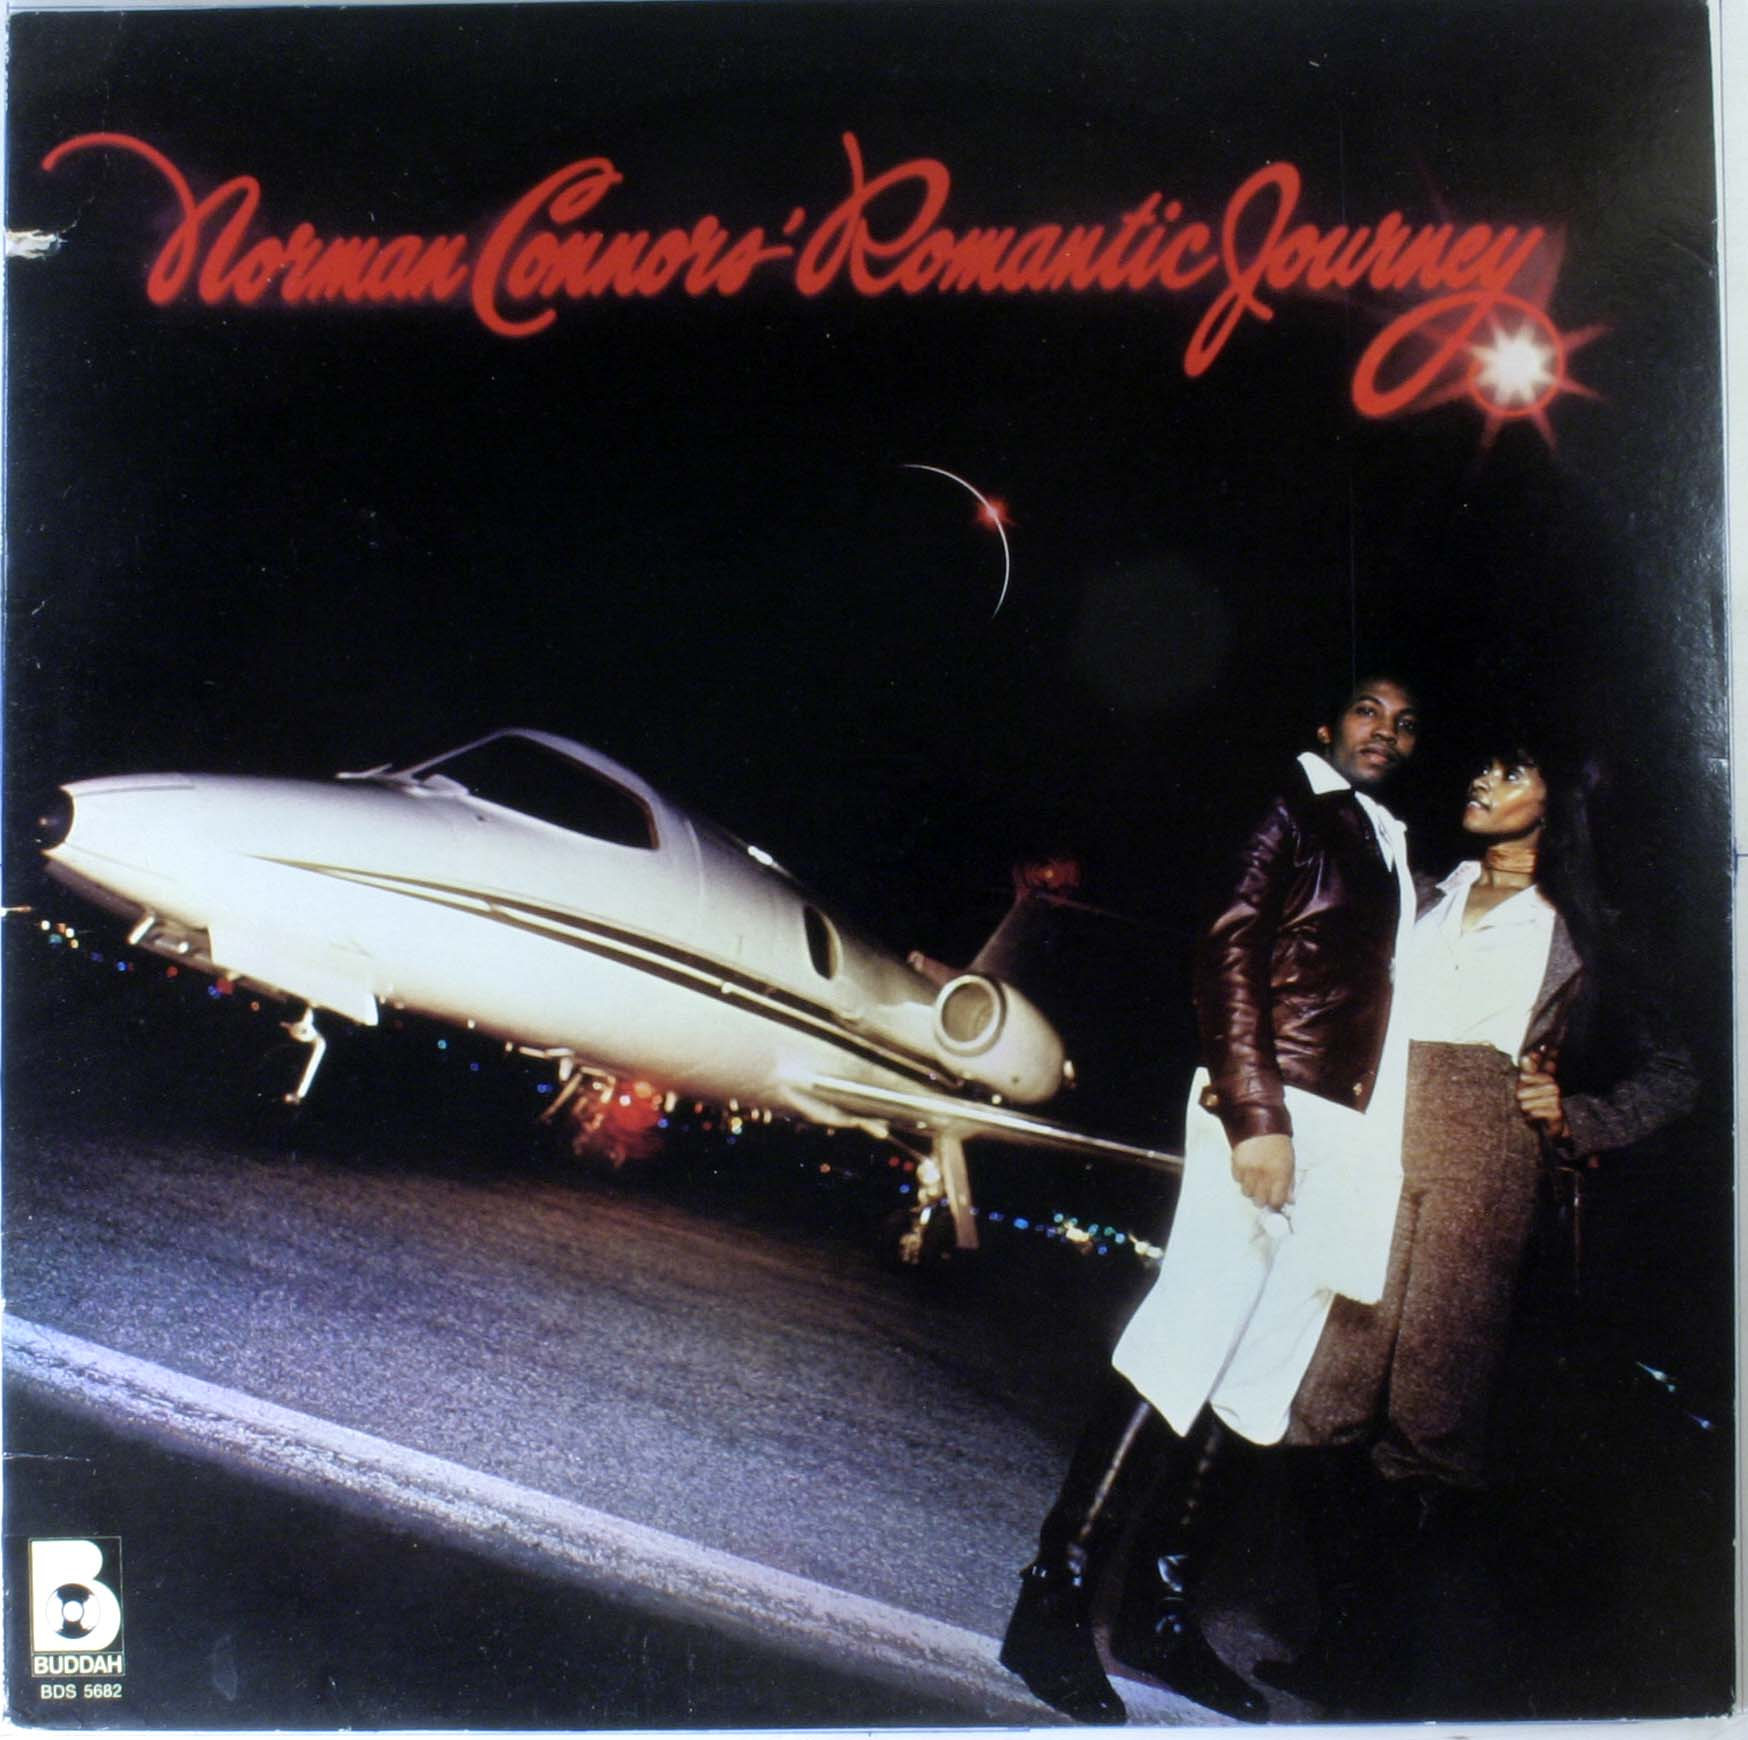 Norman Connors Romantic Journey LP